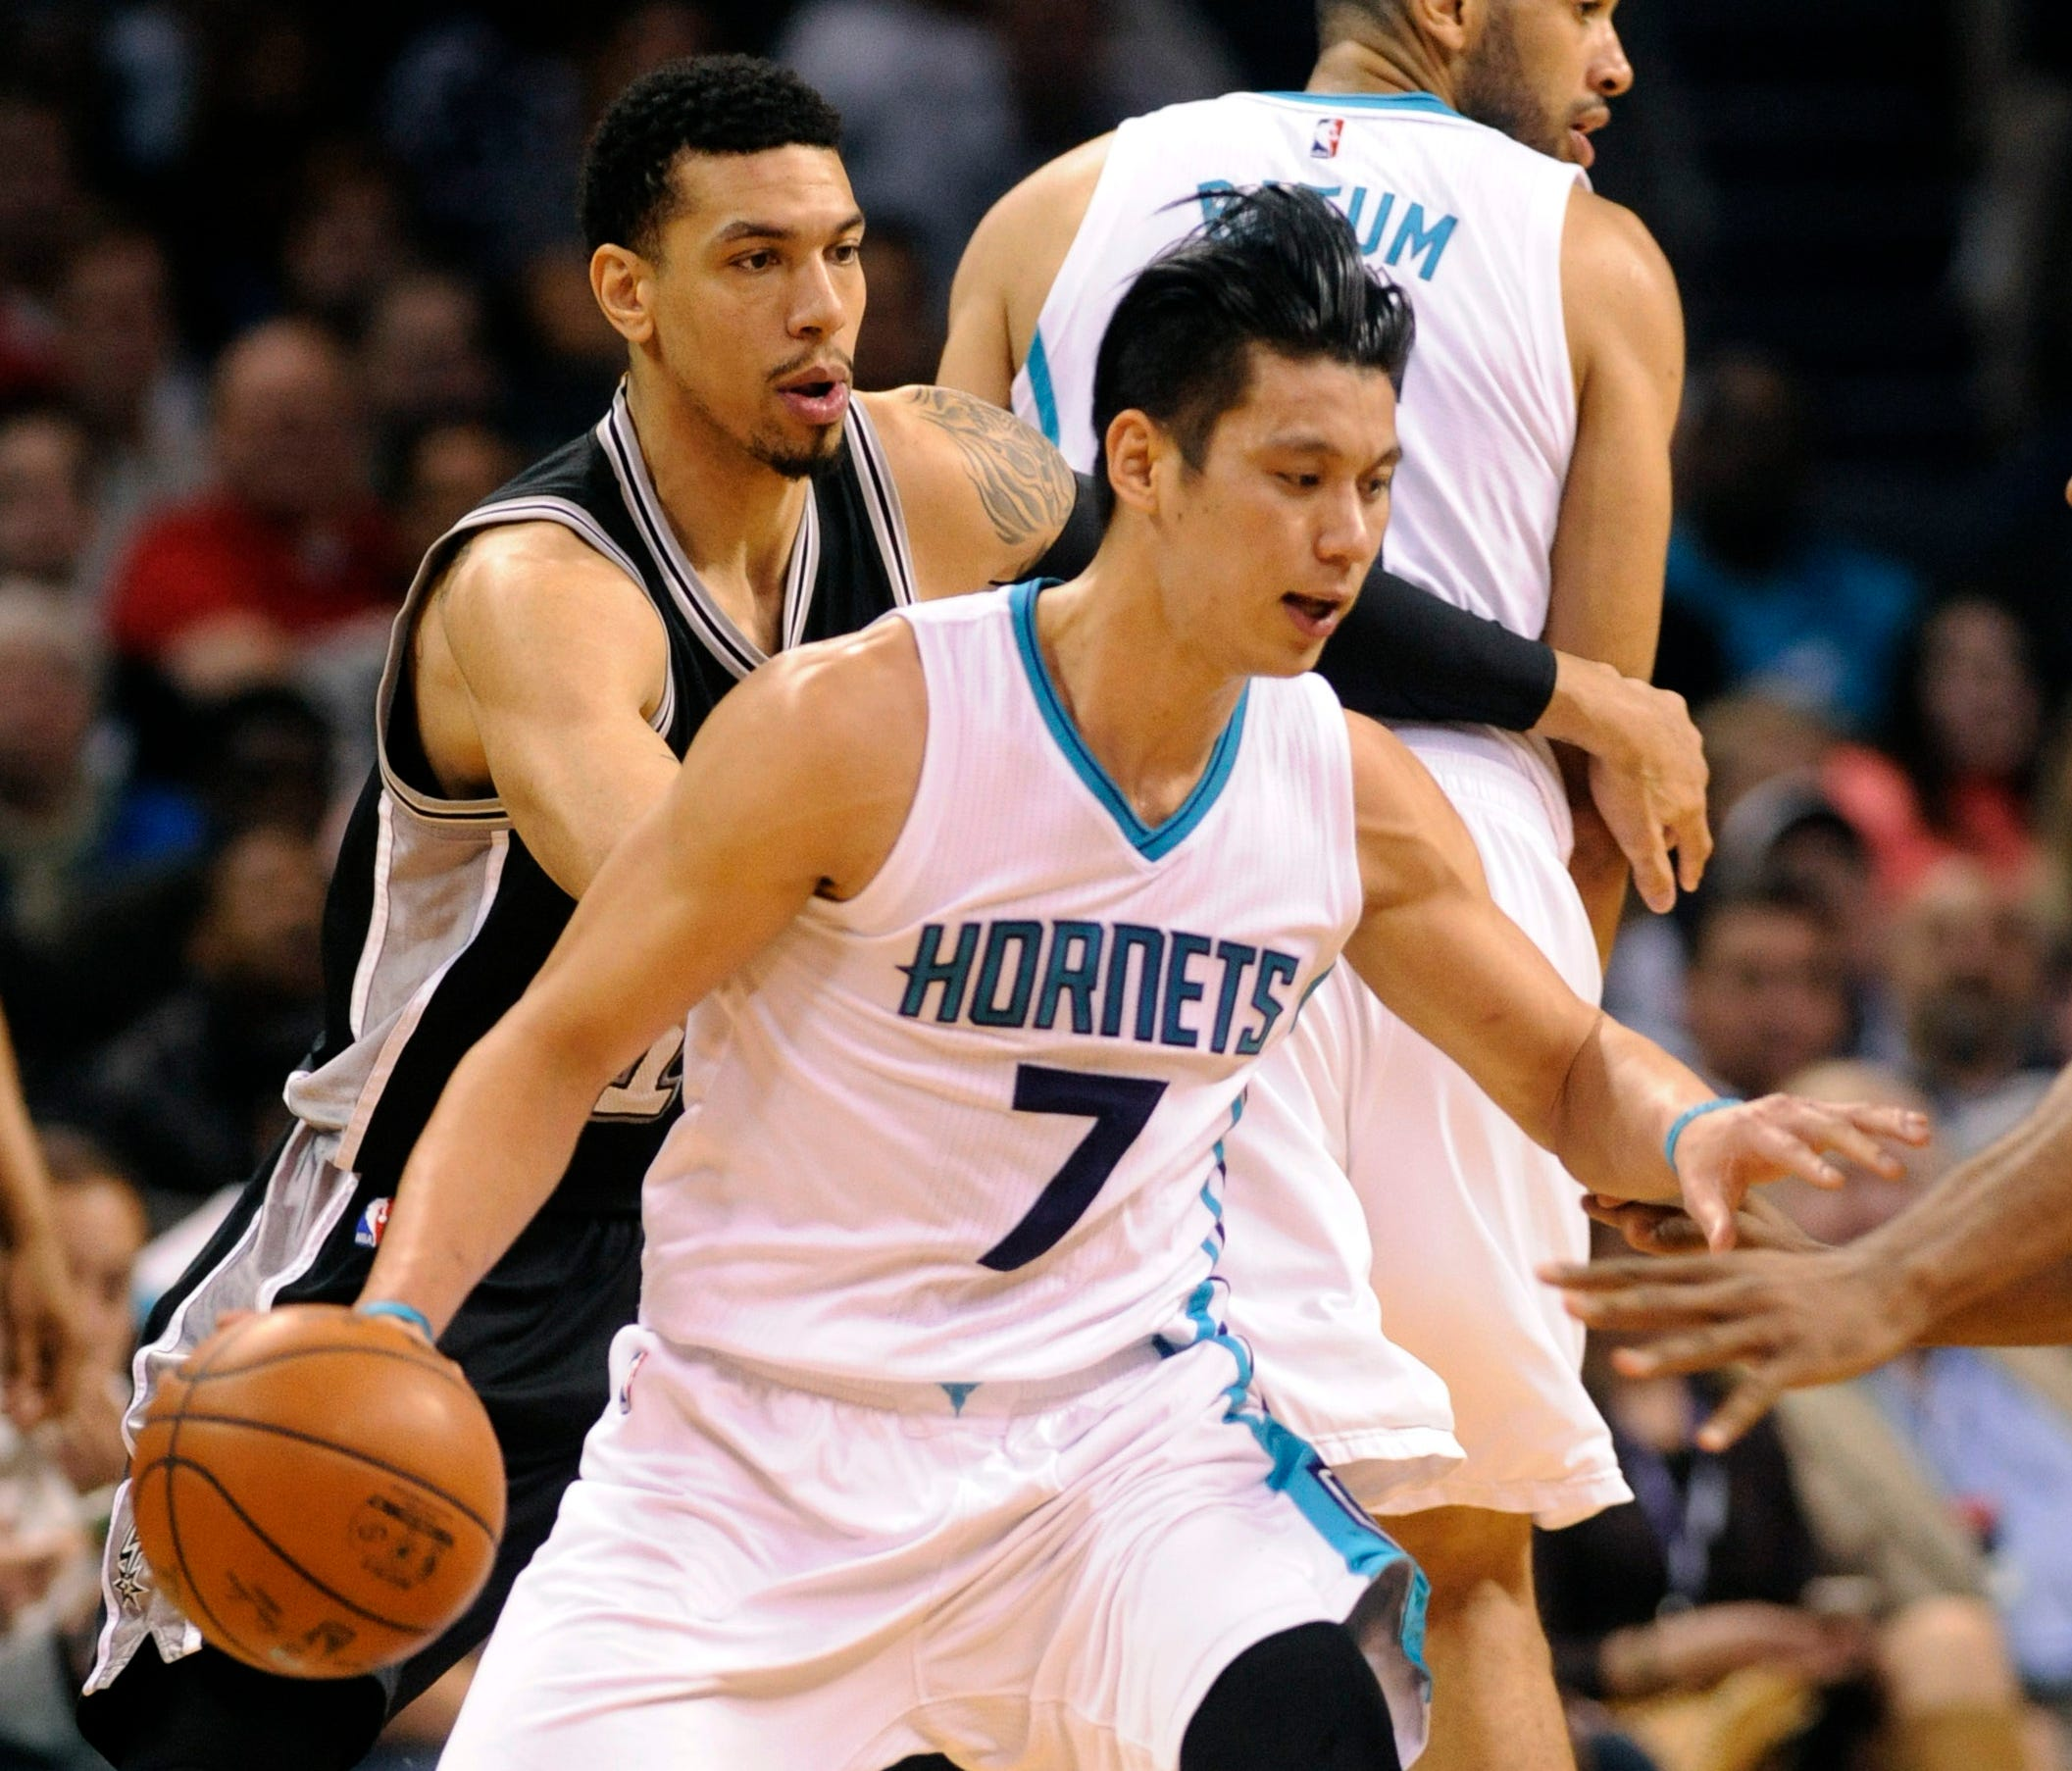 finest selection 66e4f 6dbcf Hornets storm back to edge Spurs behind Jeremy Lin's 29 ...